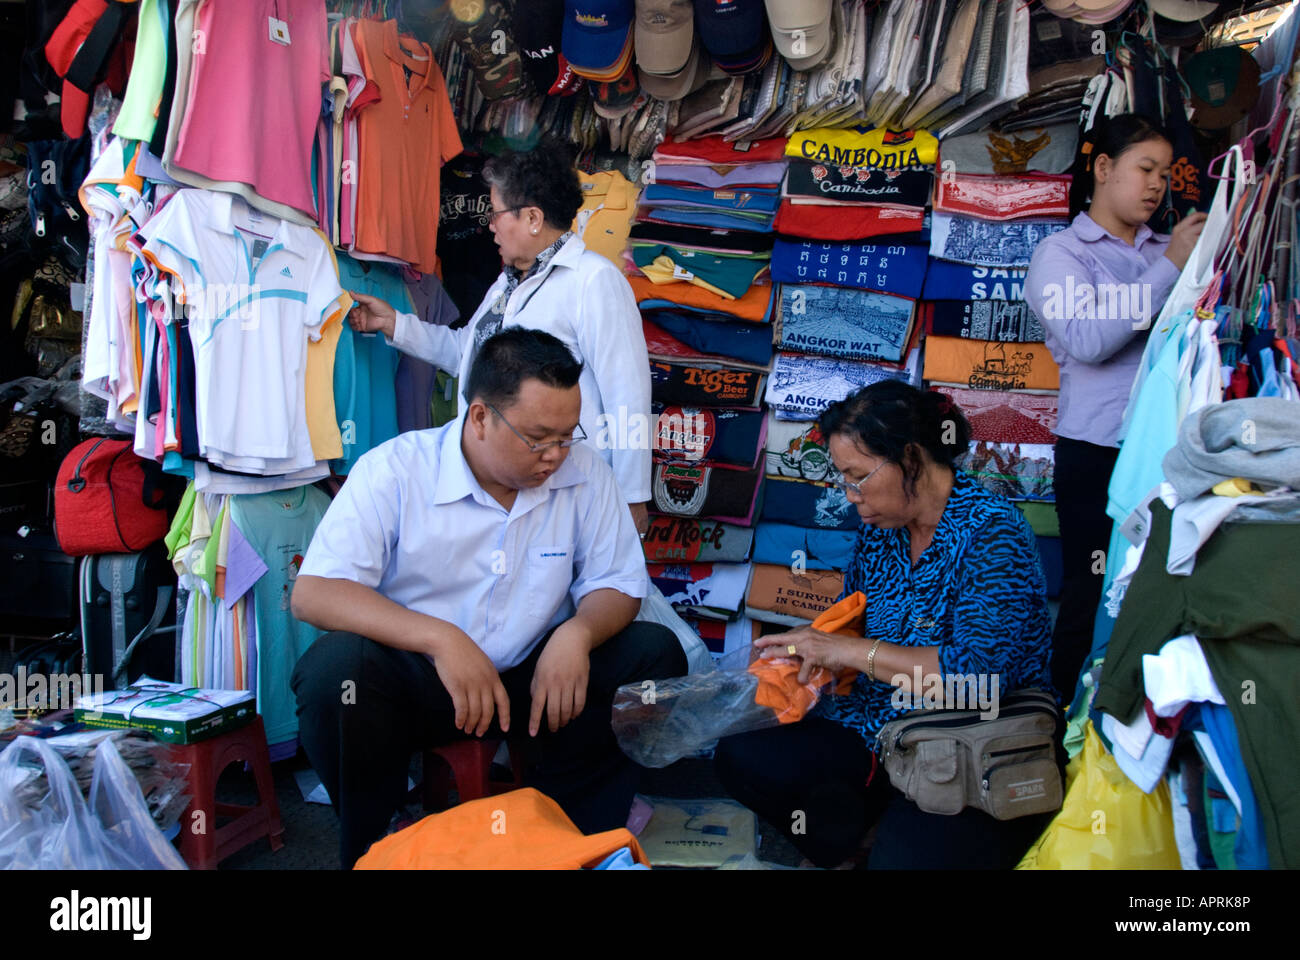 bartering at clothes' stall at Psar Thmei Market (also know as New Market or Central Market) Phnom Penh, Cambodia - Stock Image